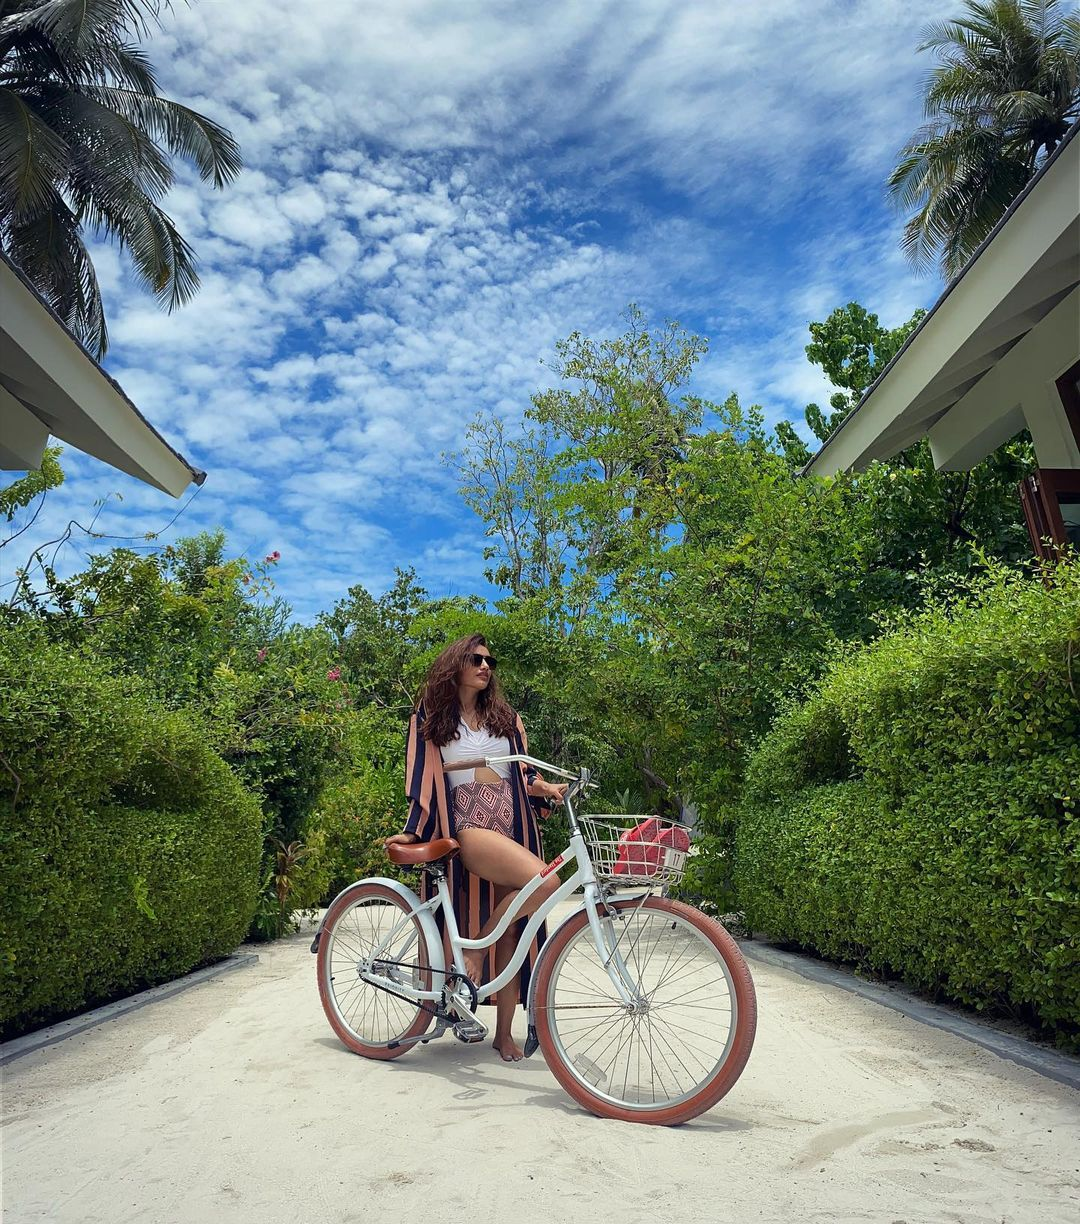 Surbhi shared photos of how she is spending her time in Madives. Posting a photo with a bicycle, she said,